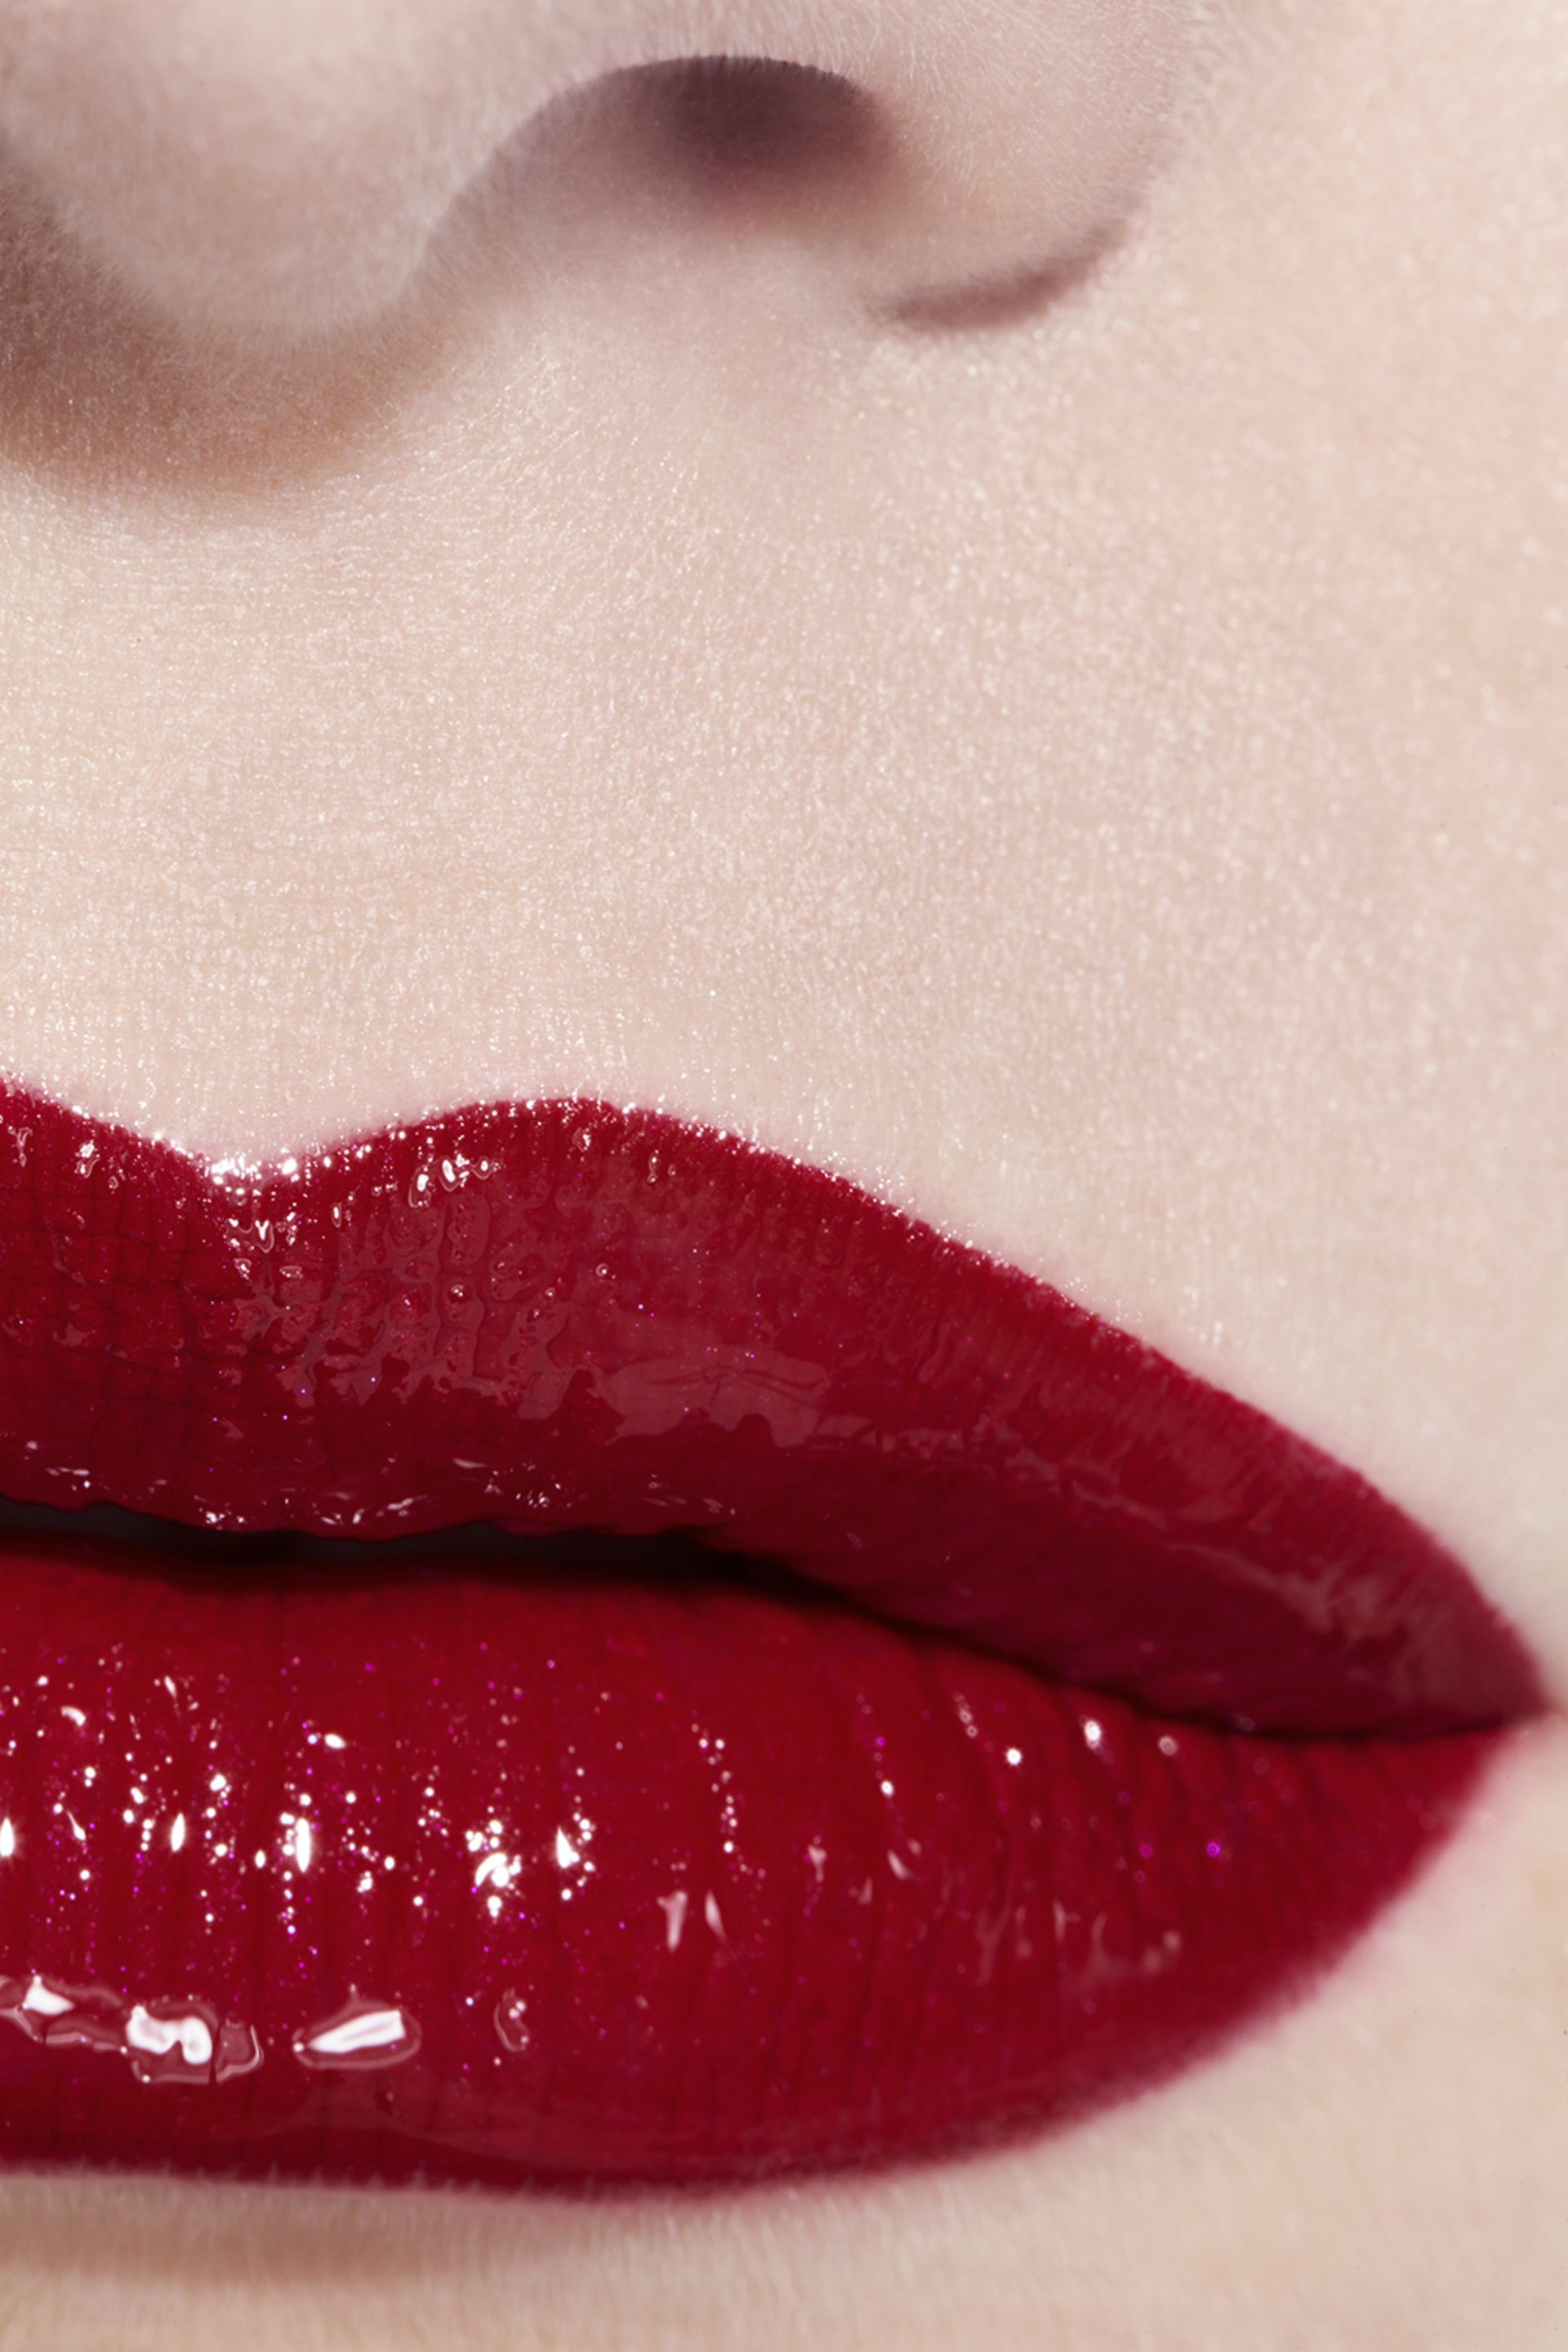 Application makeup visual 3 - LE ROUGE DUO ULTRA TENUE 49 - EVER RED